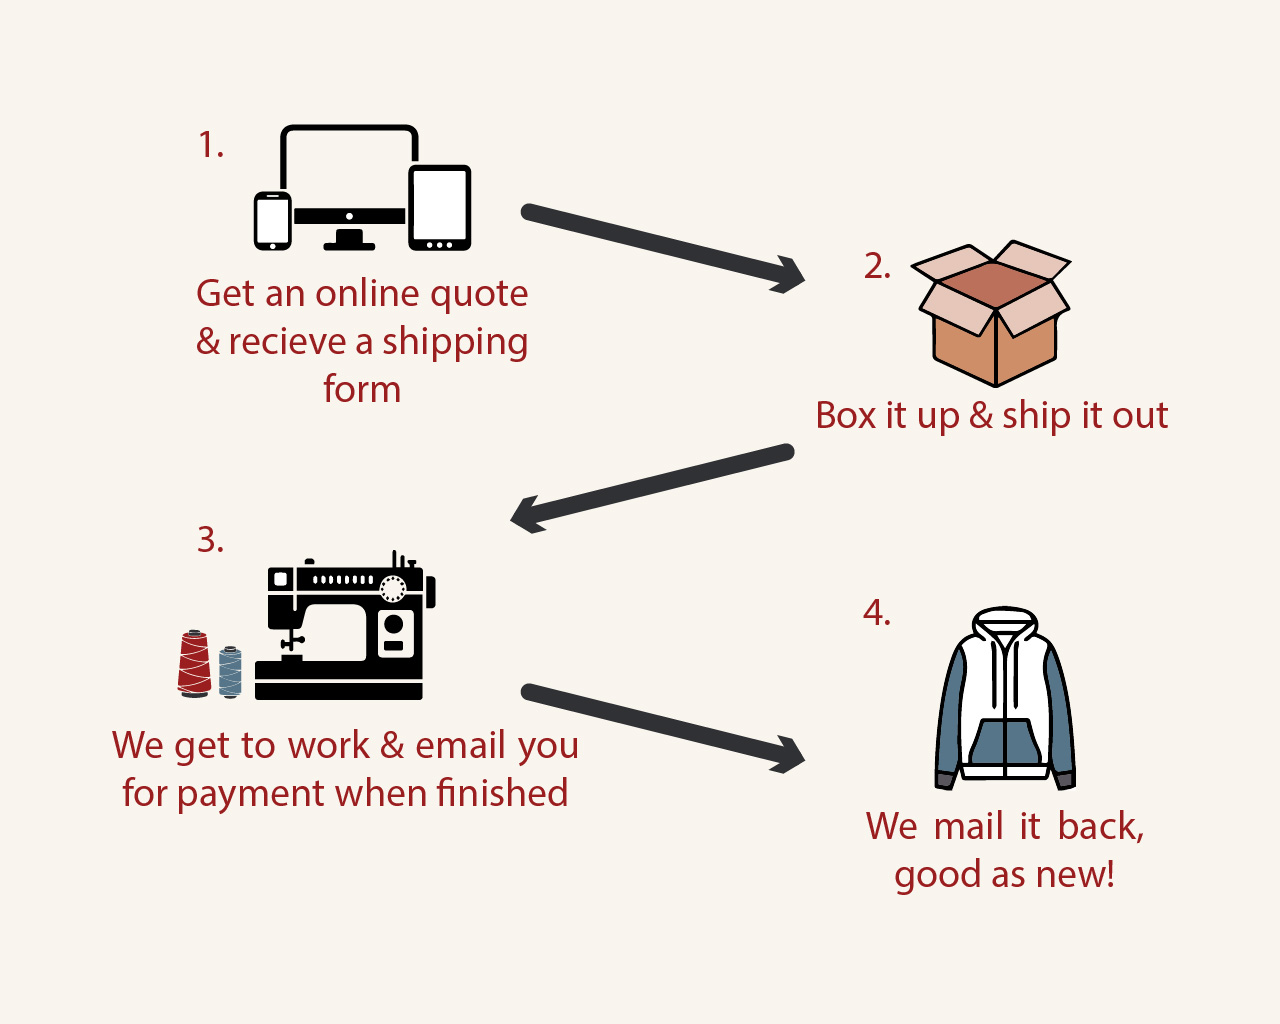 Process for mail in repairs